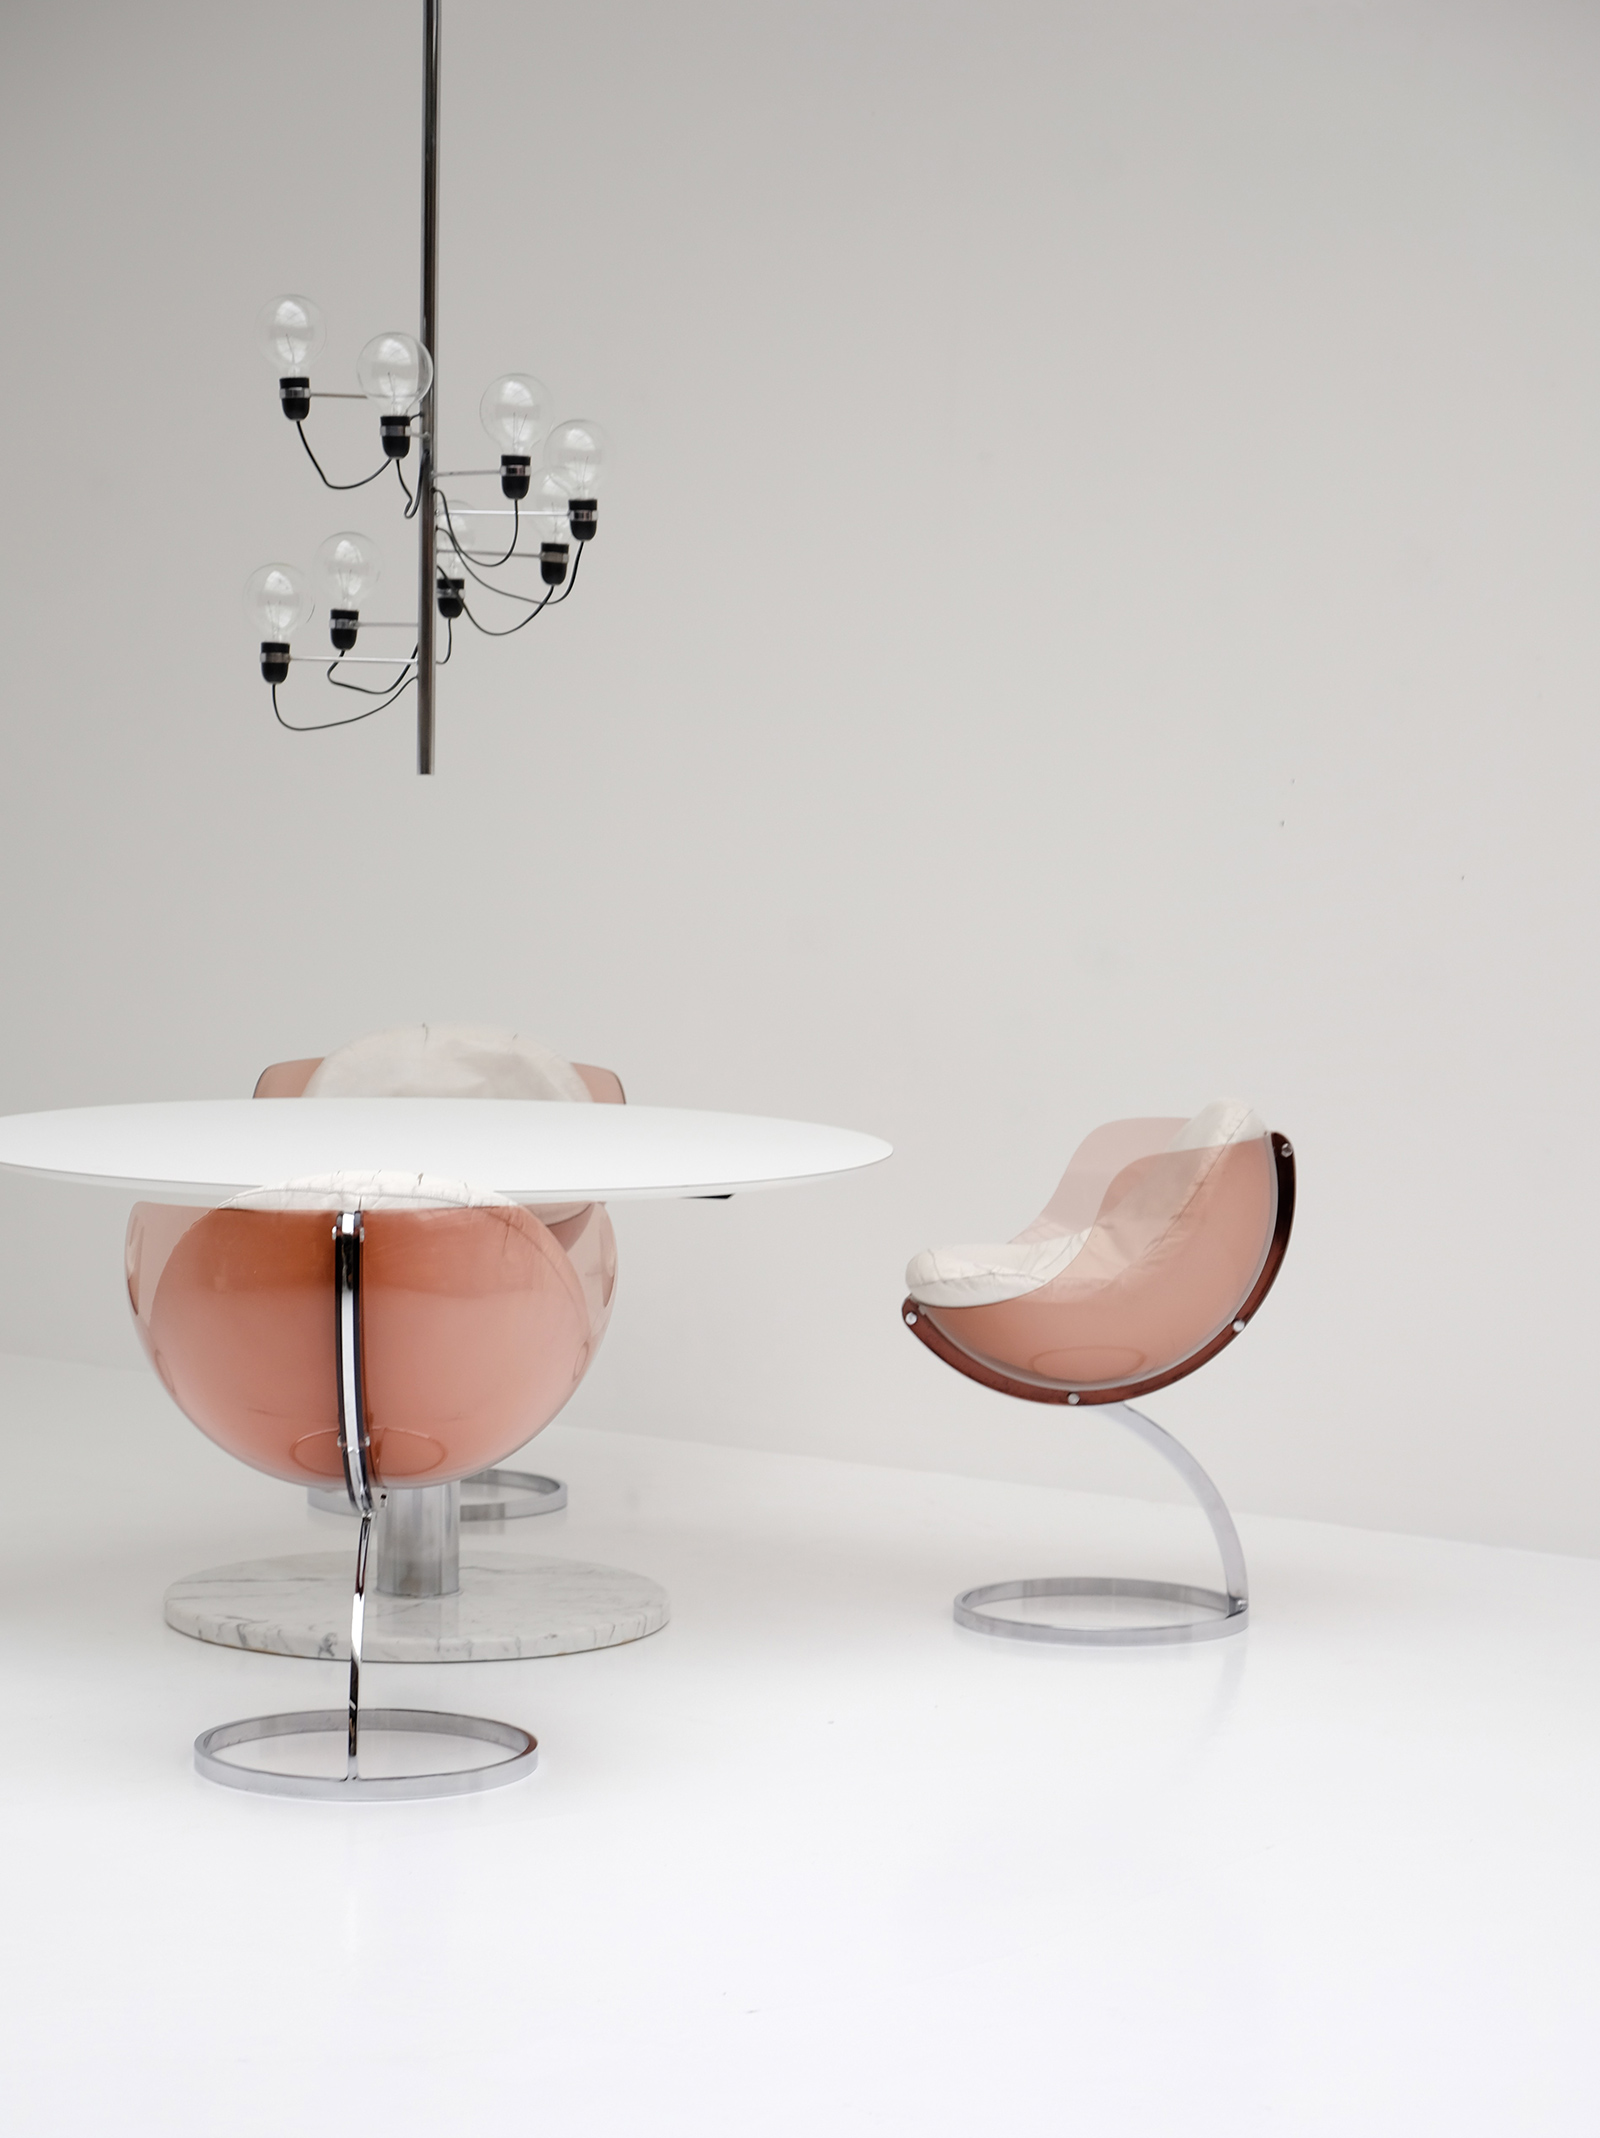 Boris Tabacoff Sphere Chairs Mobillier Modulaire Modernimage 1